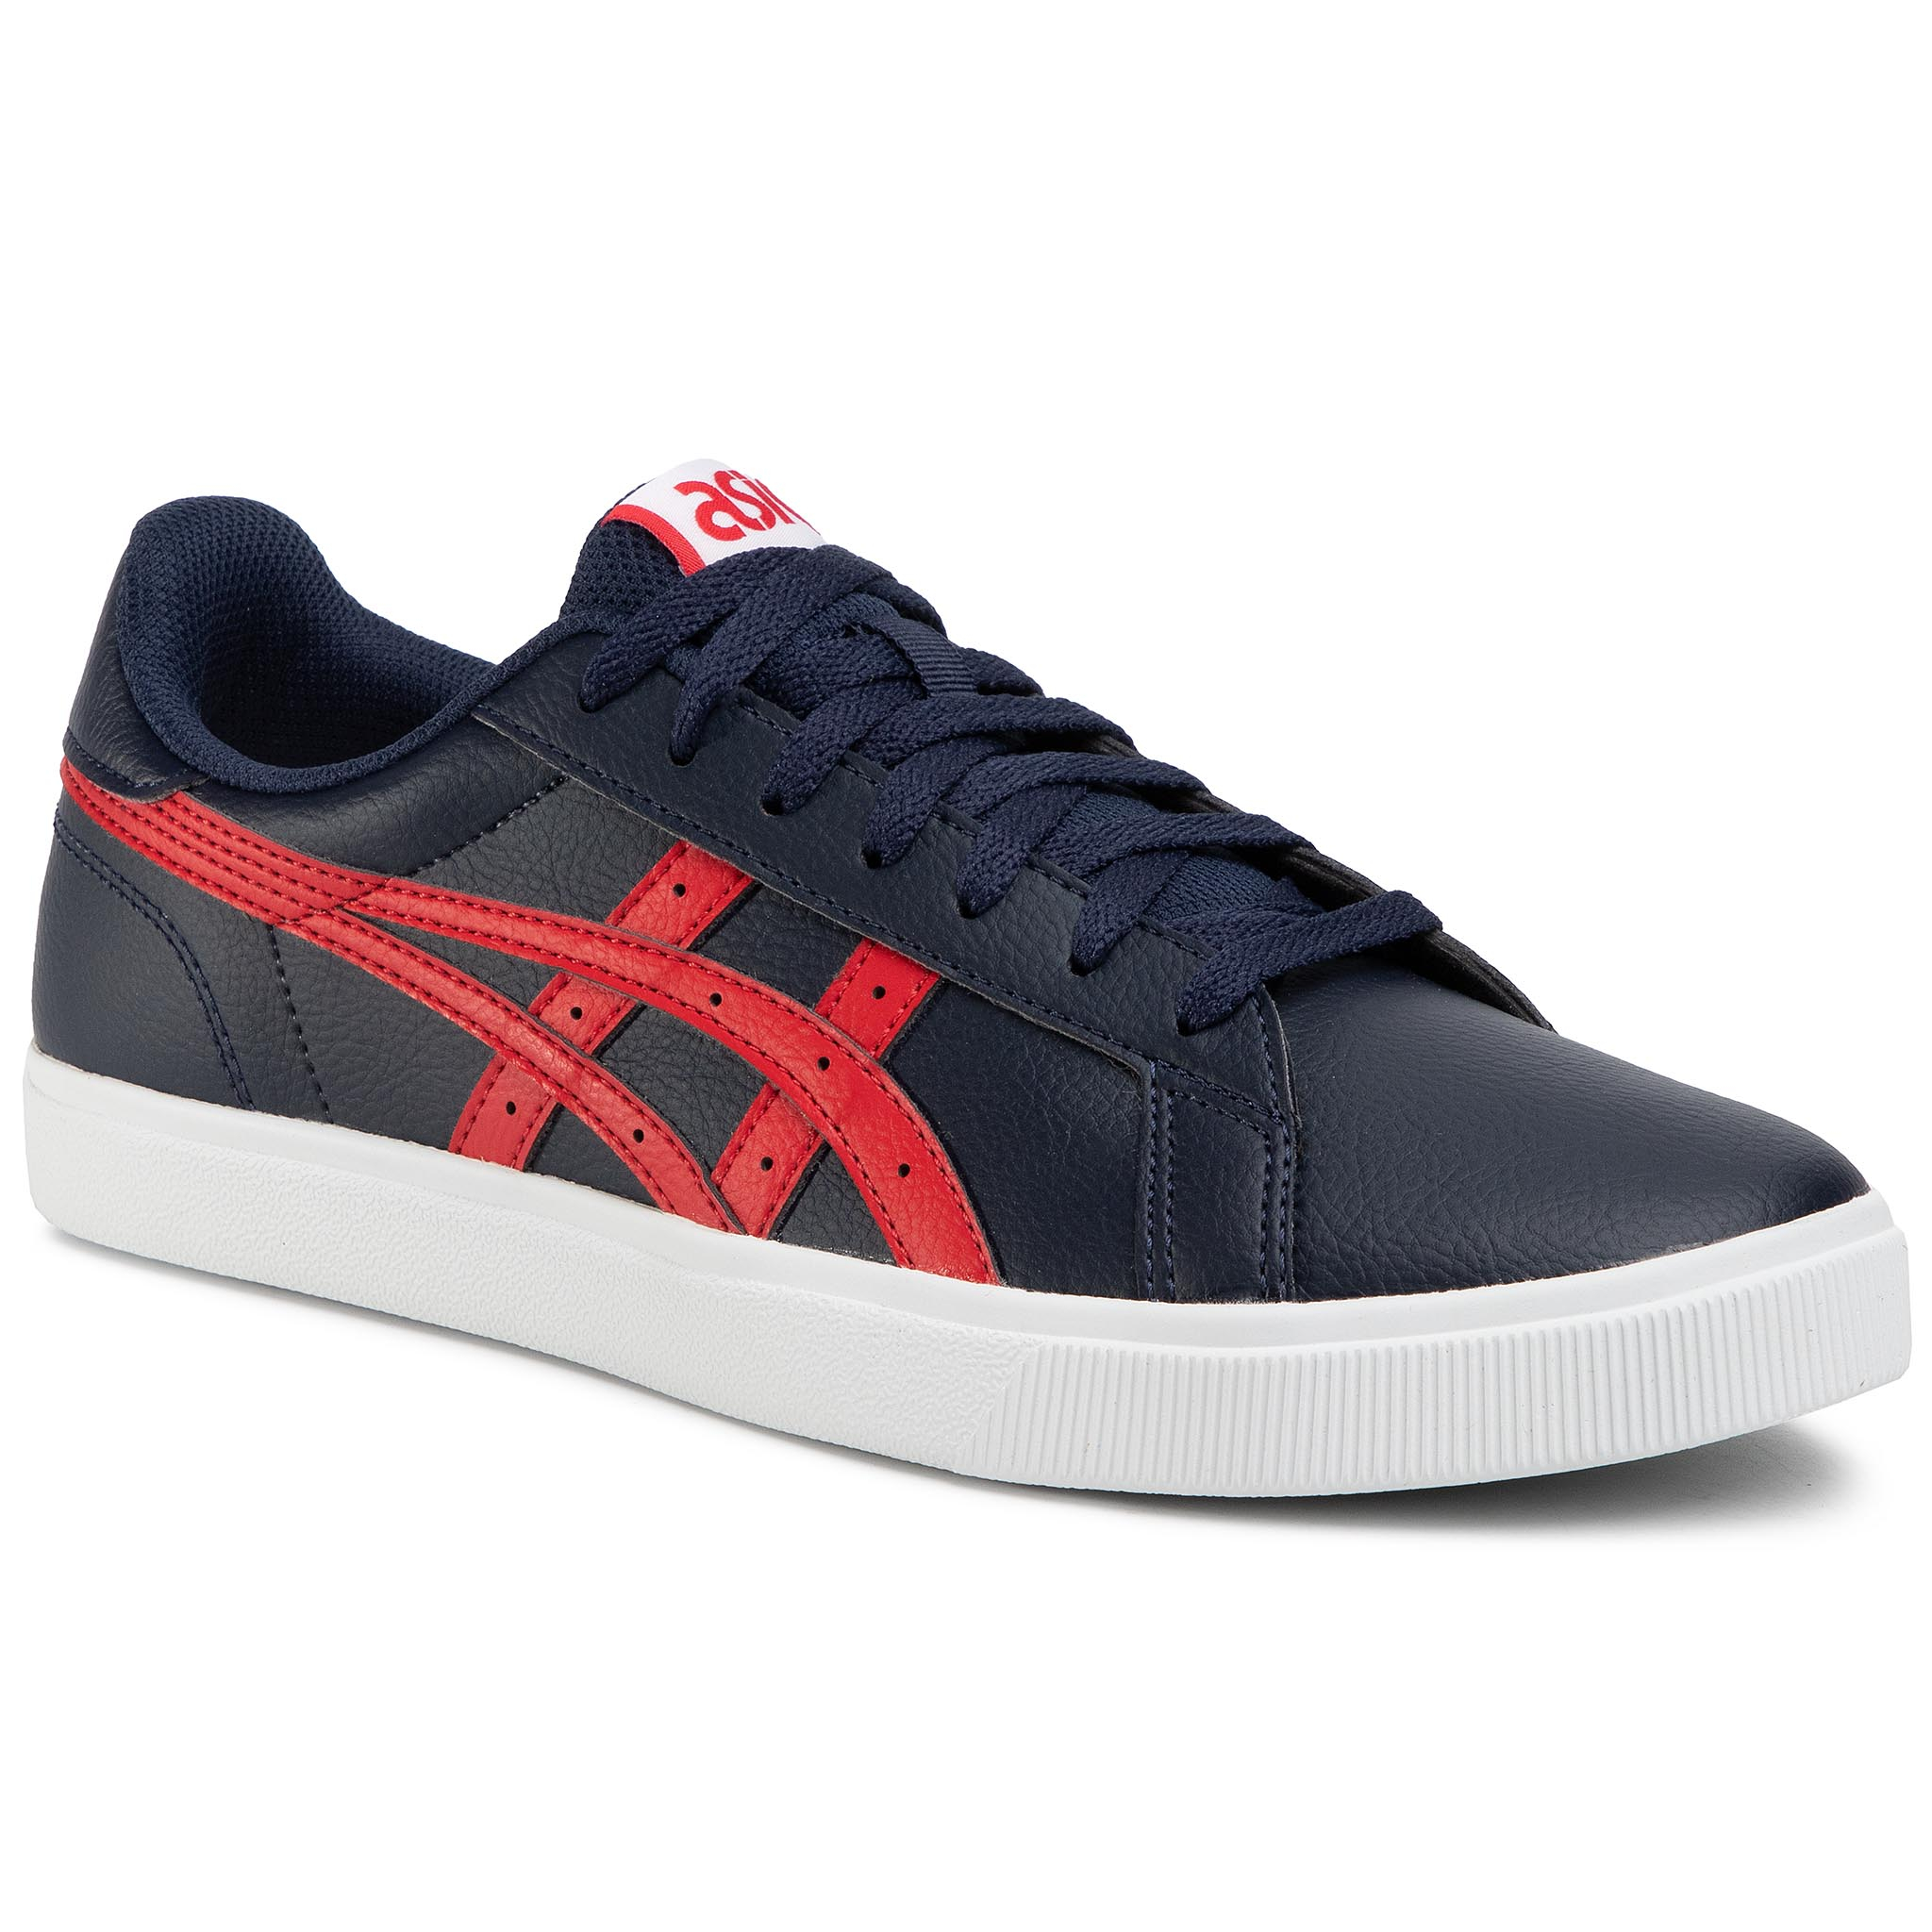 Sneakers ASICS - Classic Ct 1191A165 Midnight/Classic Red 402